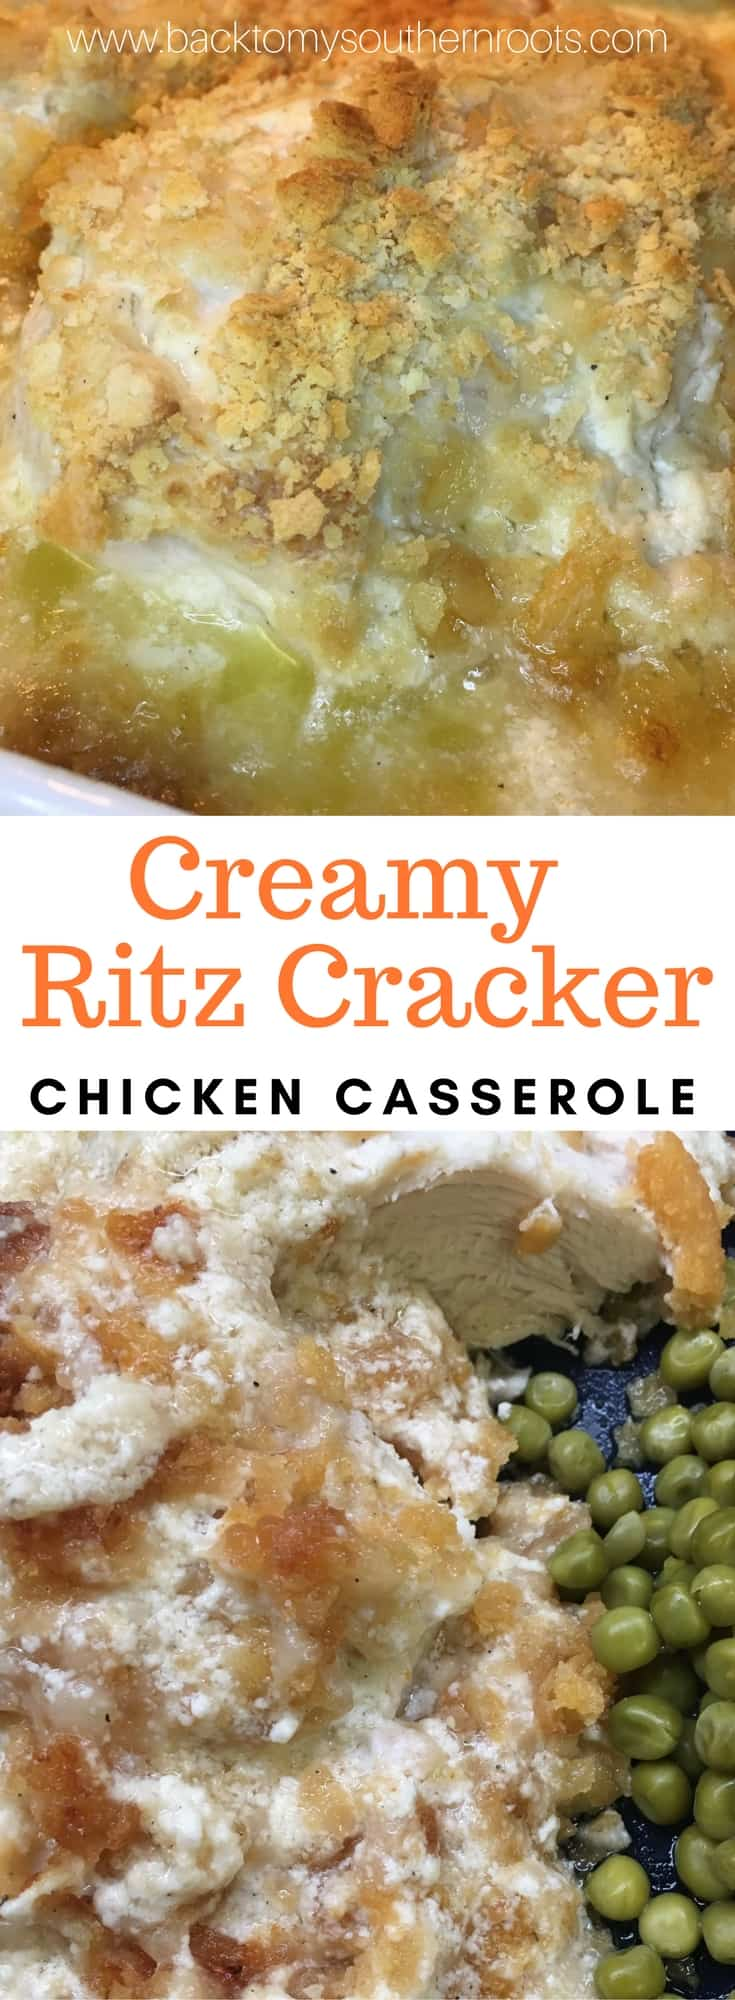 Creamy Ritz Cracker Chicken Casserole might be one of the easiest meals I've ever fixed. And, it has ingredients that I love--sour cream, butter, and Ritz Crackers.